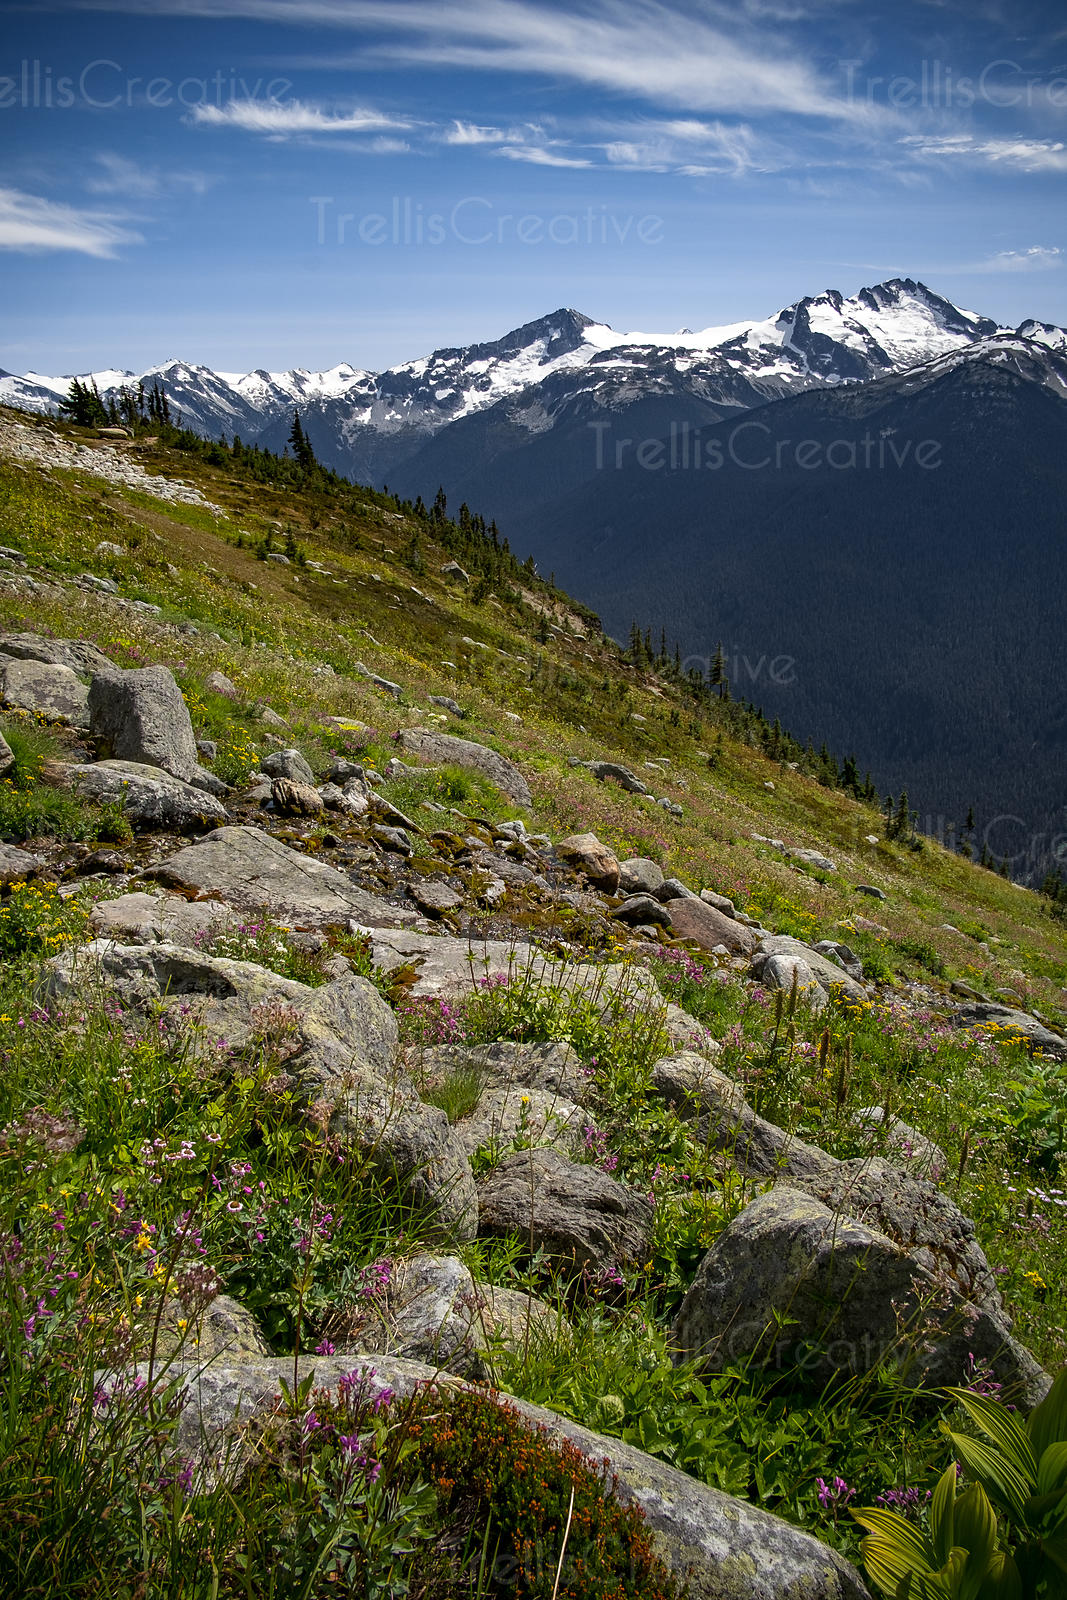 Colorful spring wildflowers growing among the rocky peak of a mountain, Whistler, Canada.